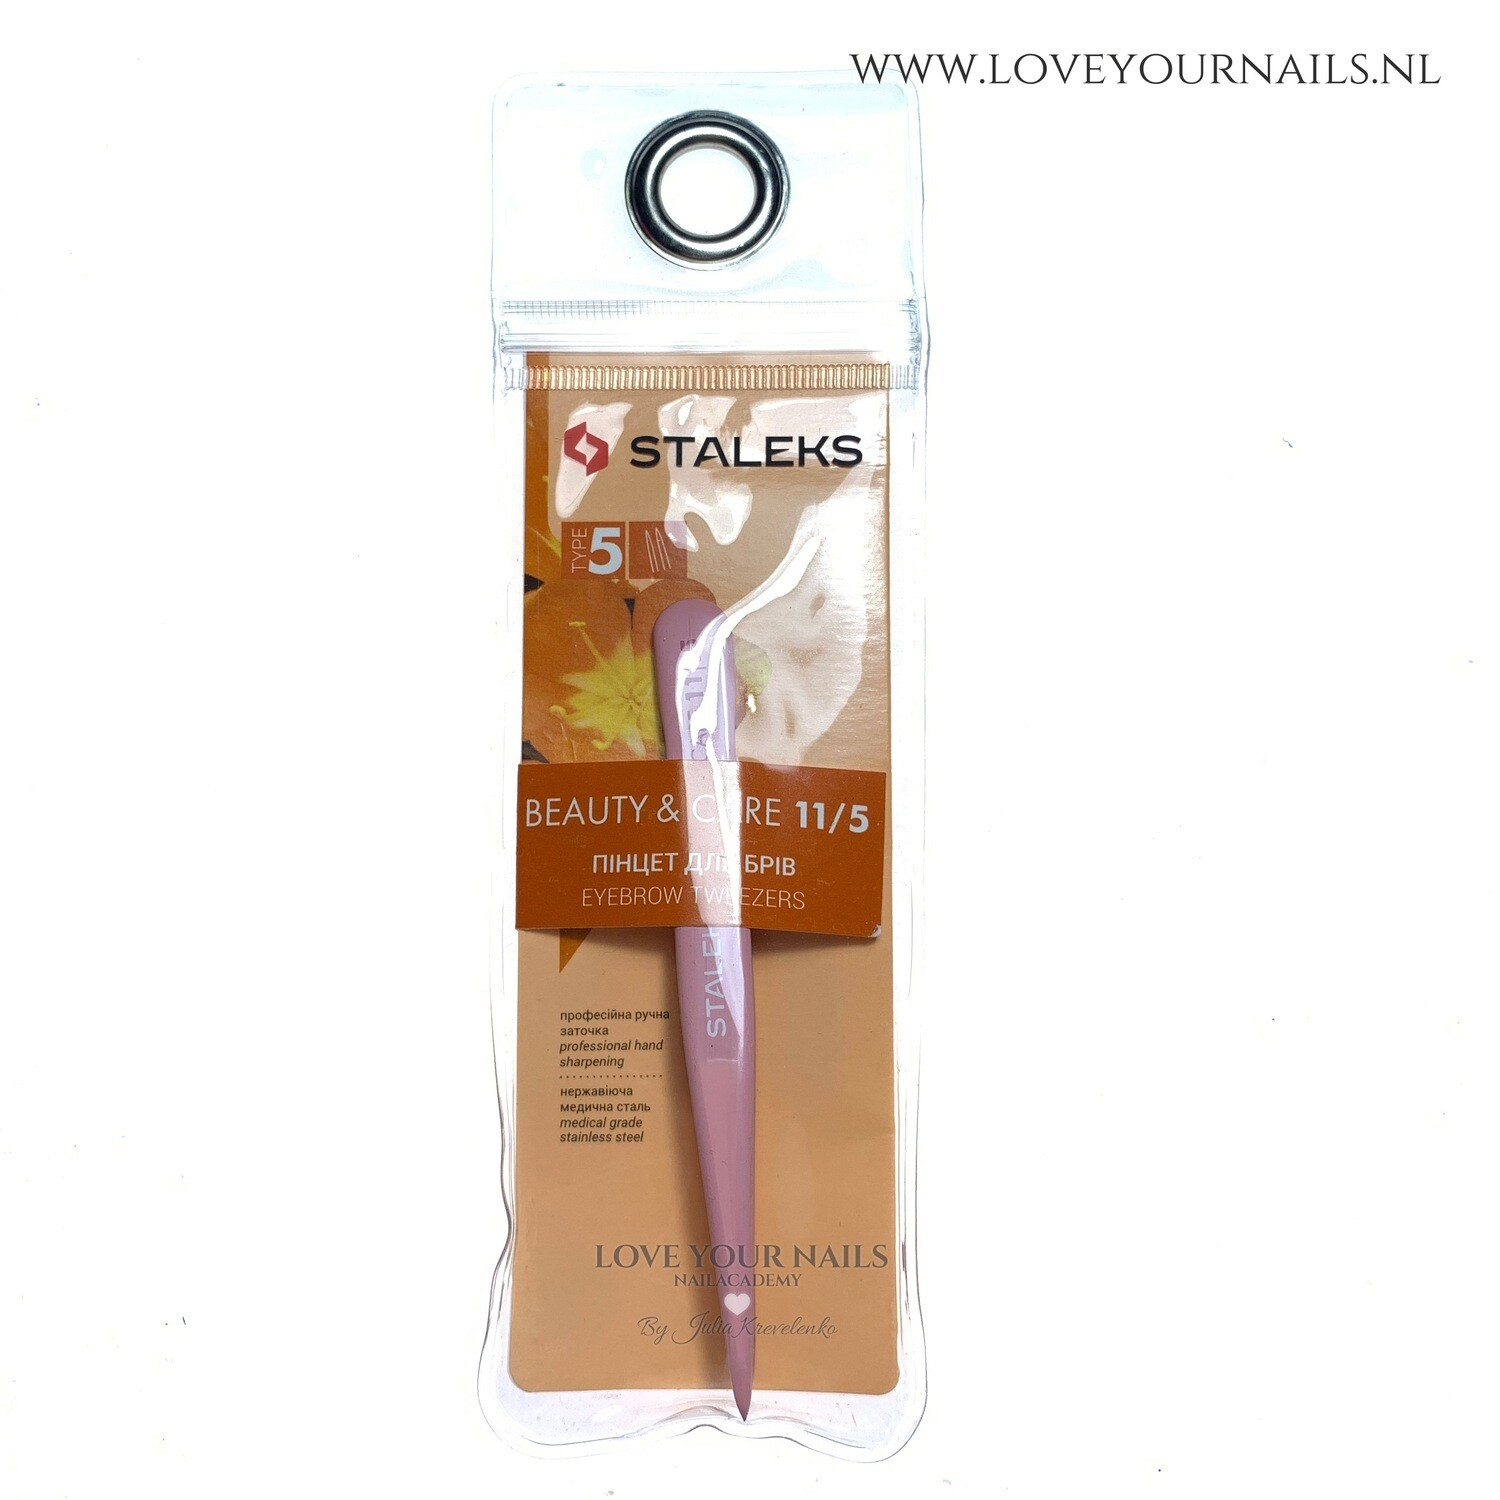 Staleks Beauty&Care 11/5 Eyebrow Tweezers (Point, Pink Colour)